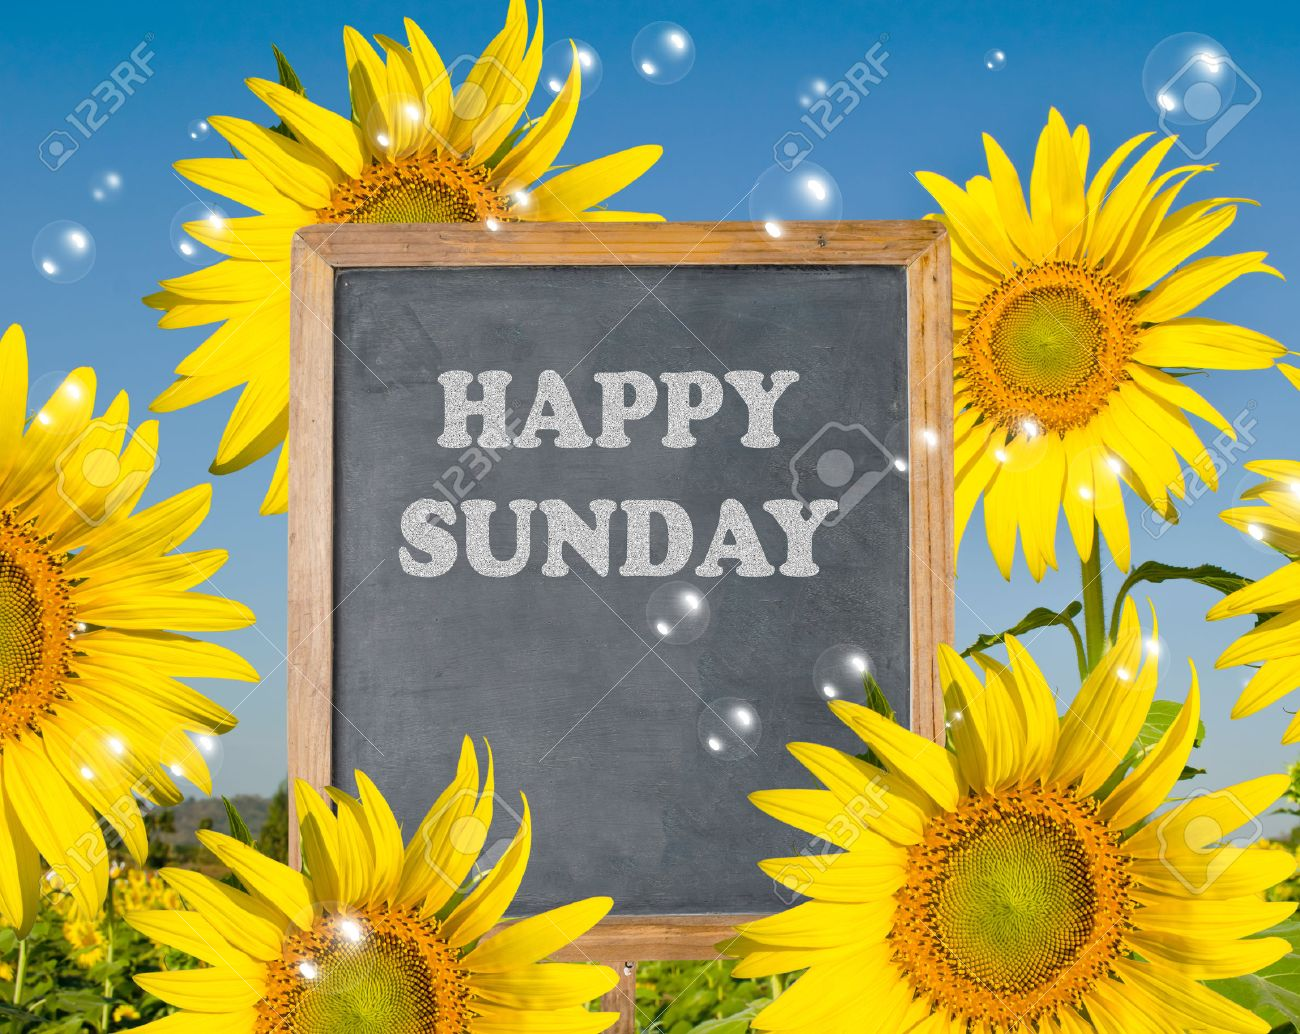 Happy Sunday with blooming sunflower on background Stock Photo - 32641789